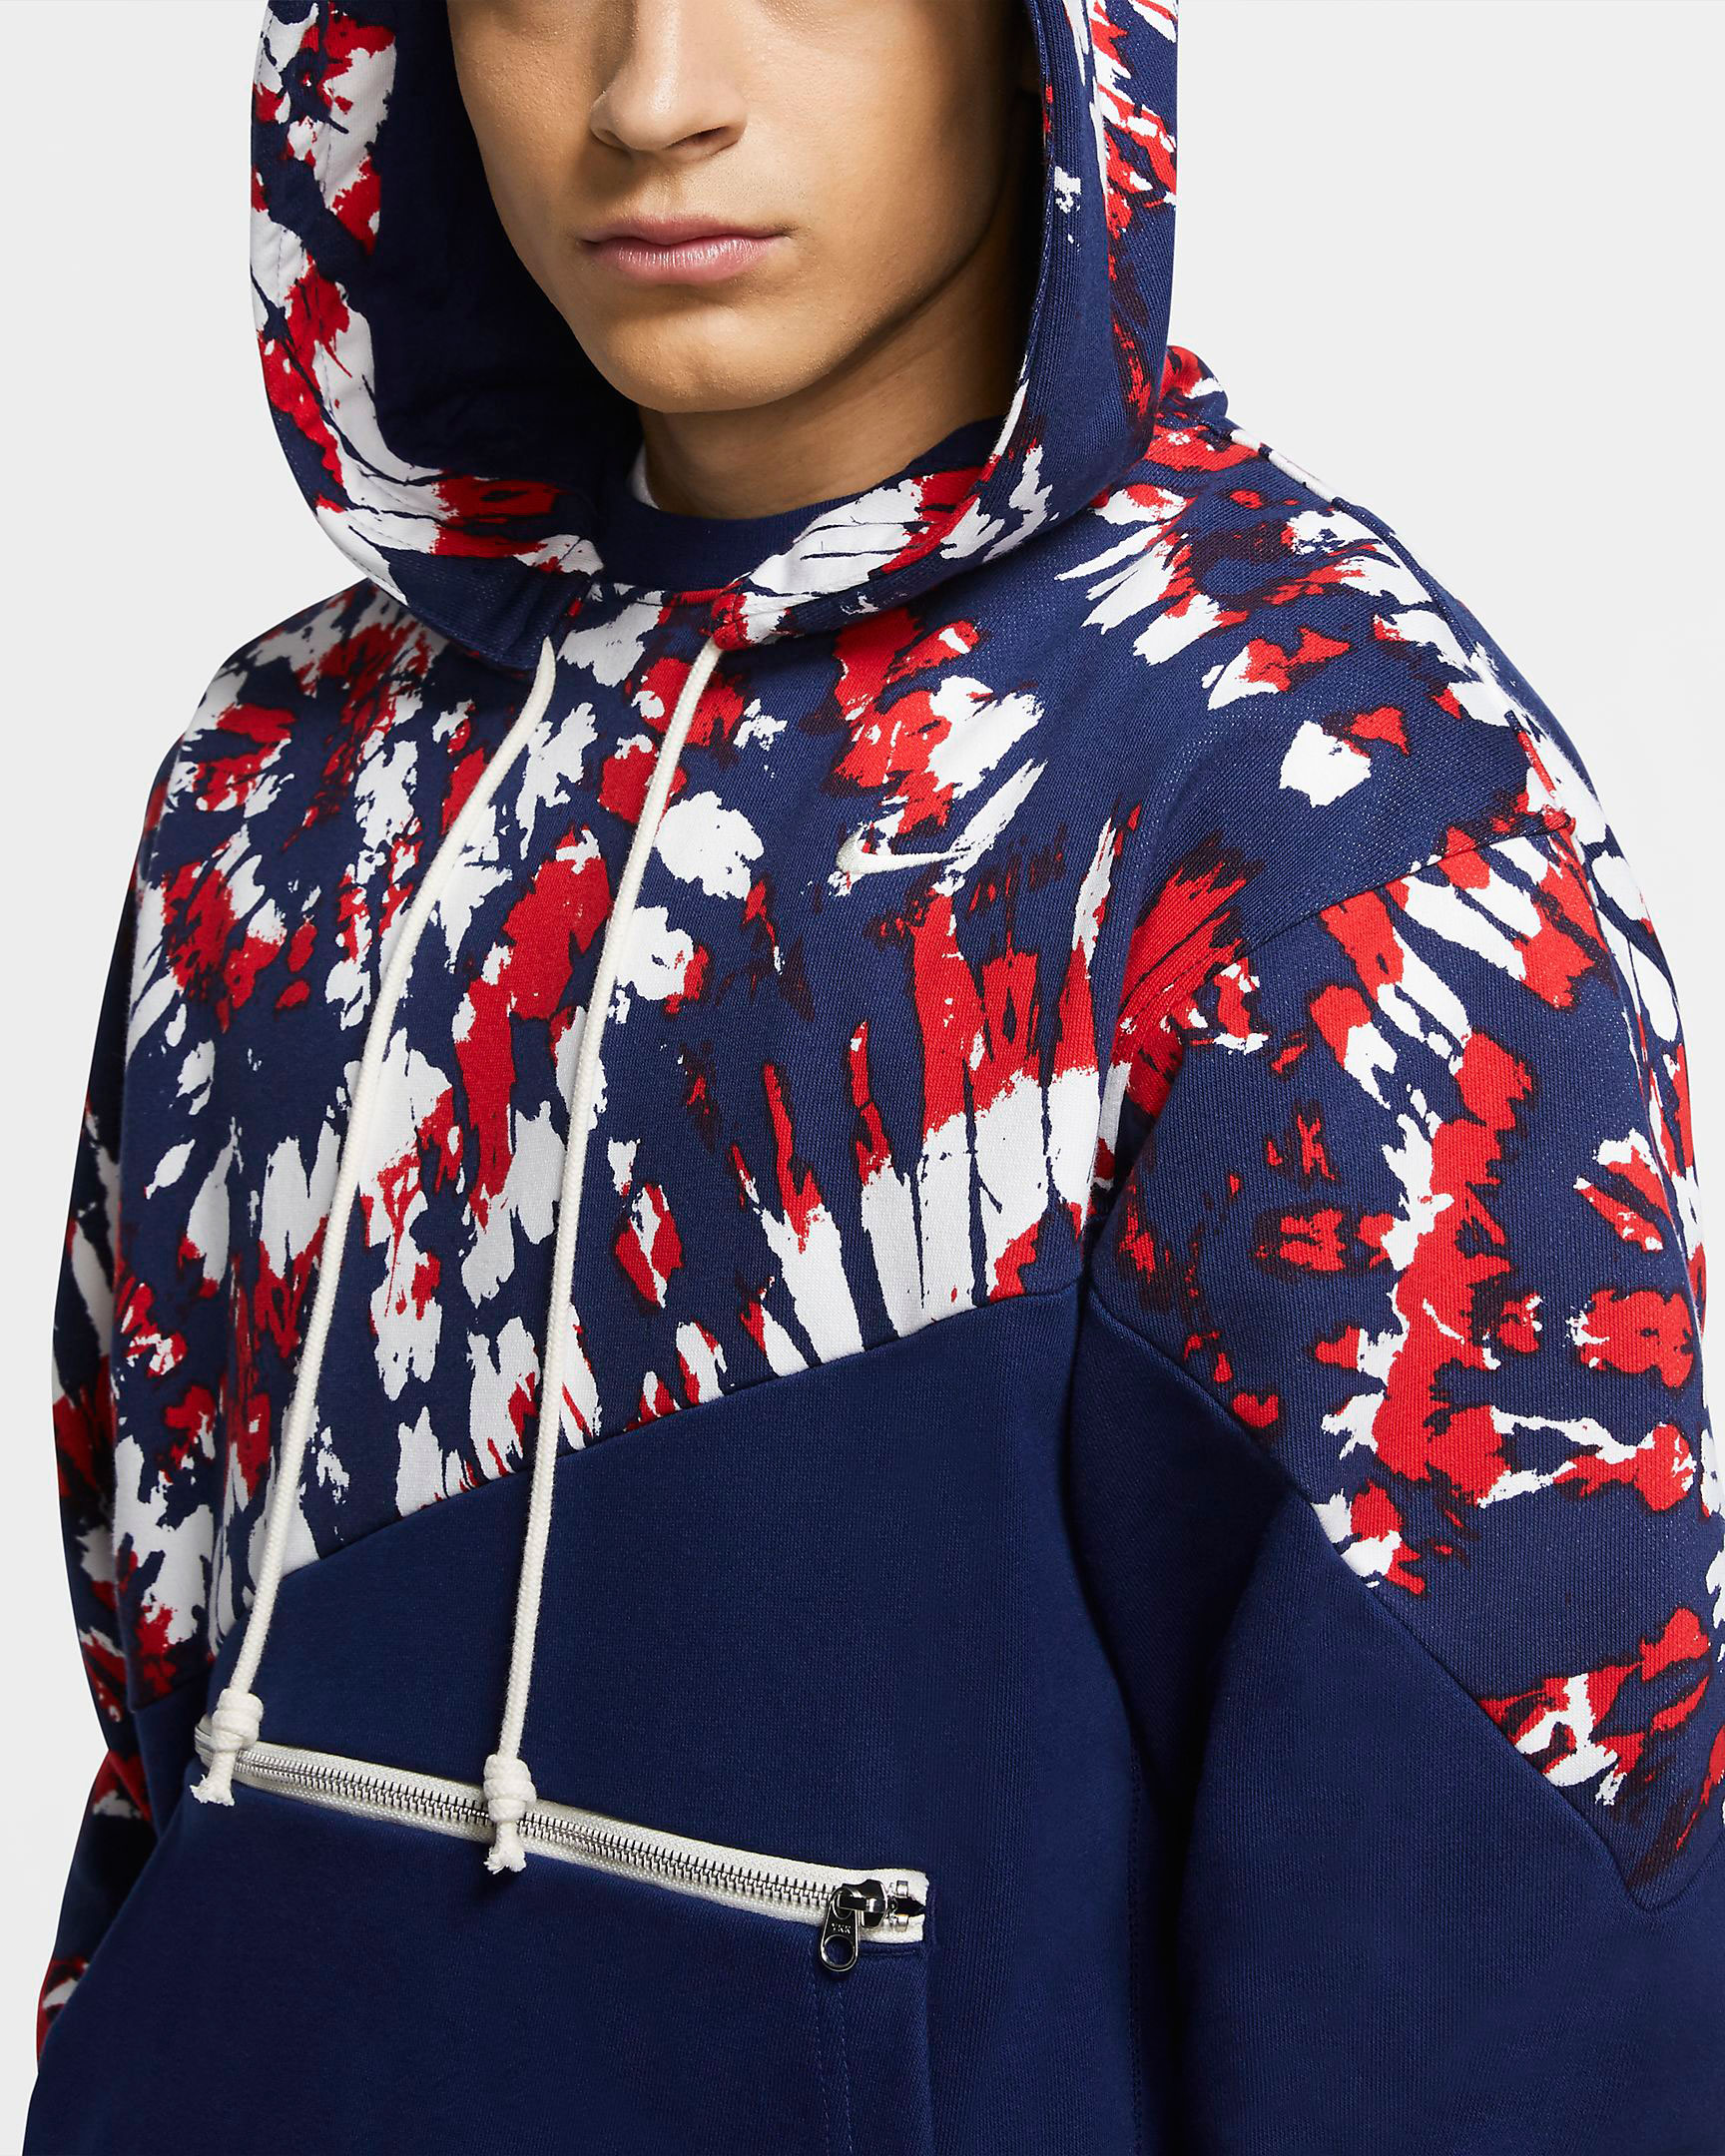 nike-kybrid-s2-what-the-usa-hoodie-1